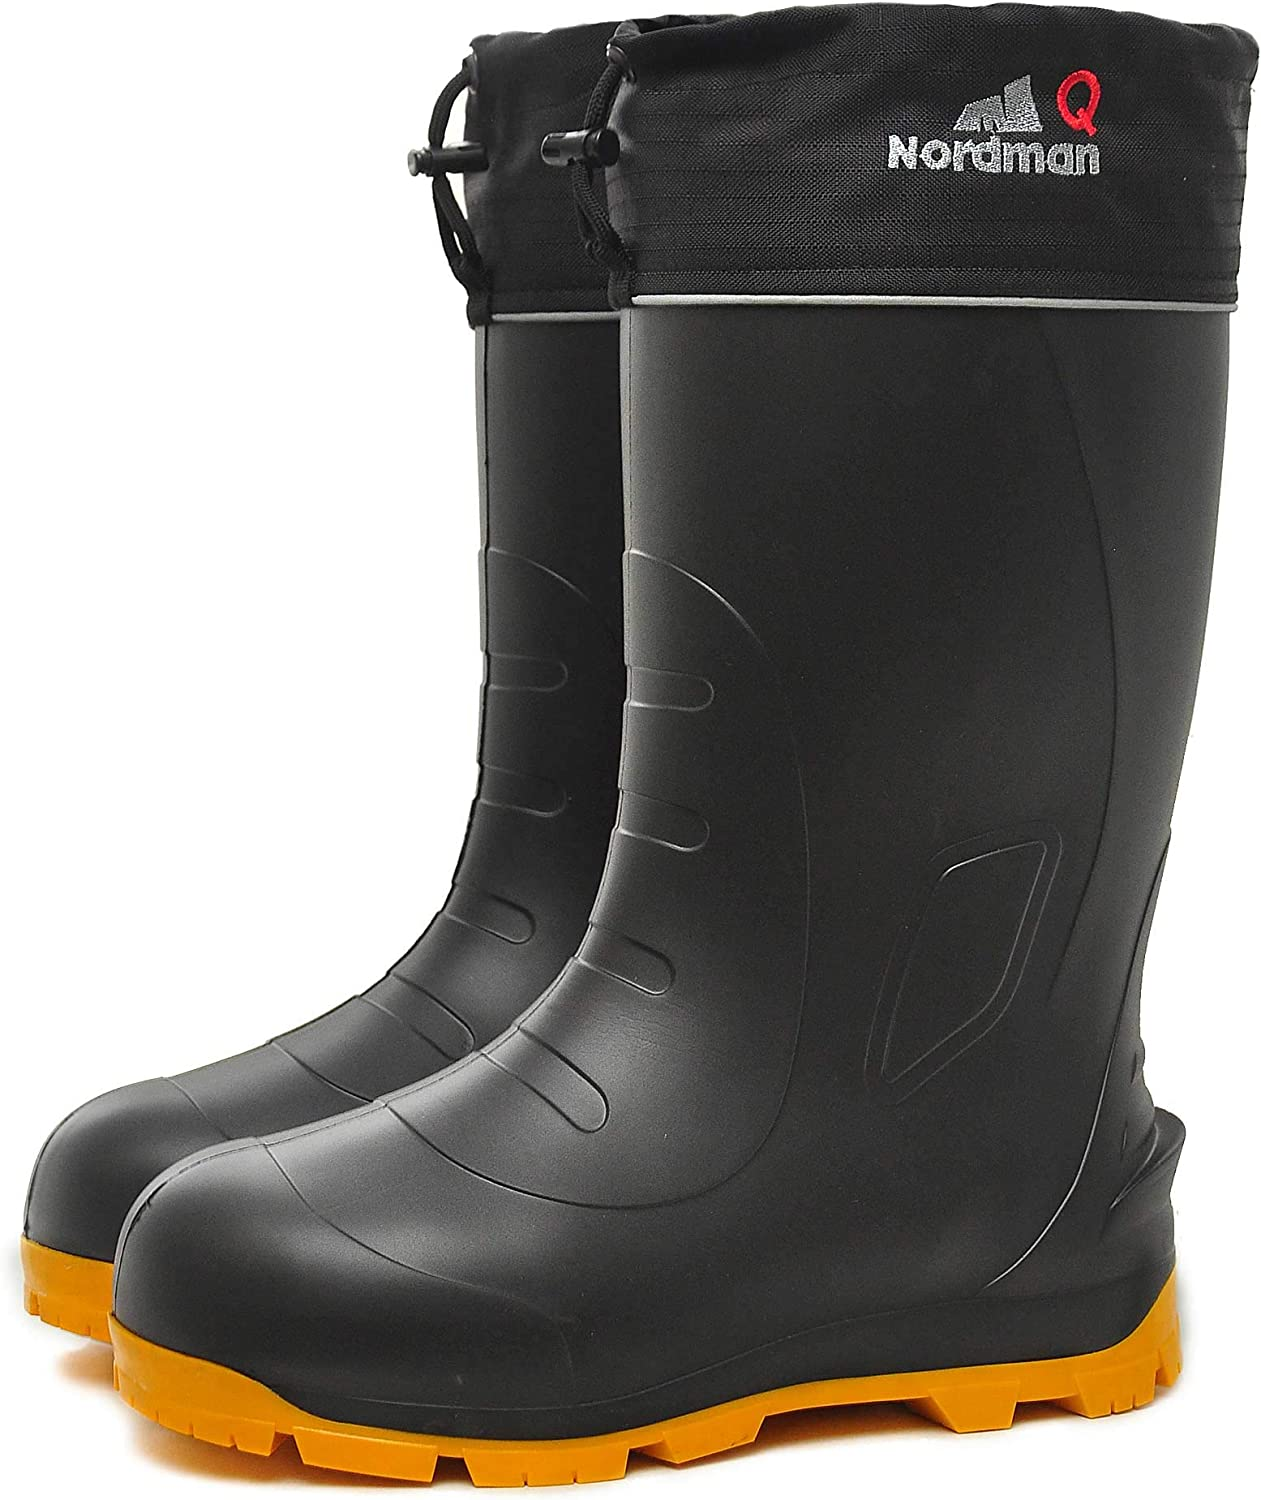 Nordman Men Boot -50 °C -58 Waterproof Hunting Safety and trust Fishing Deluxe °F Winter